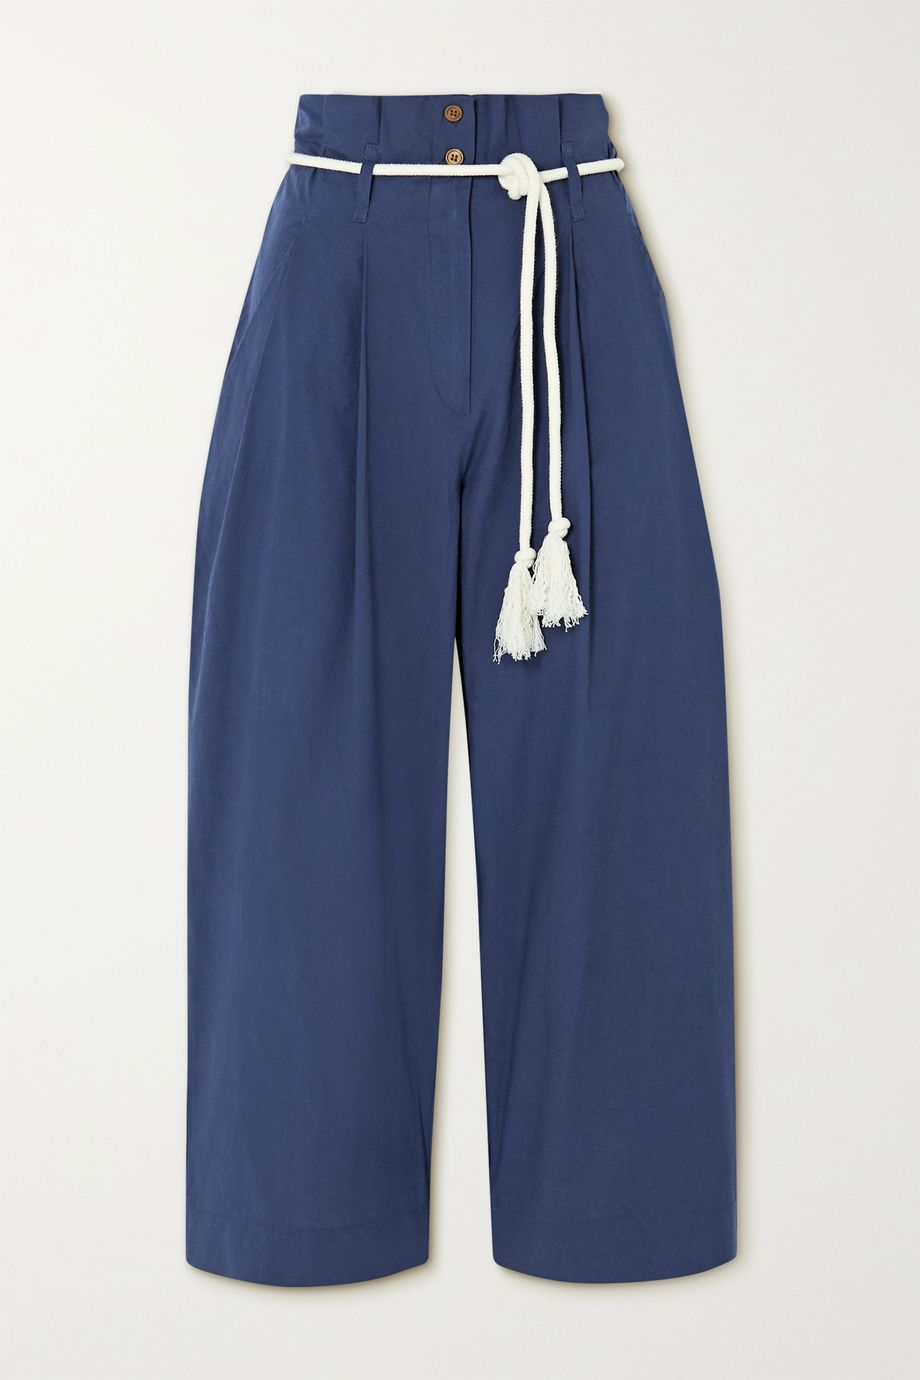 Vanessa Bruno Nardo cropped belted cotton tapered pants